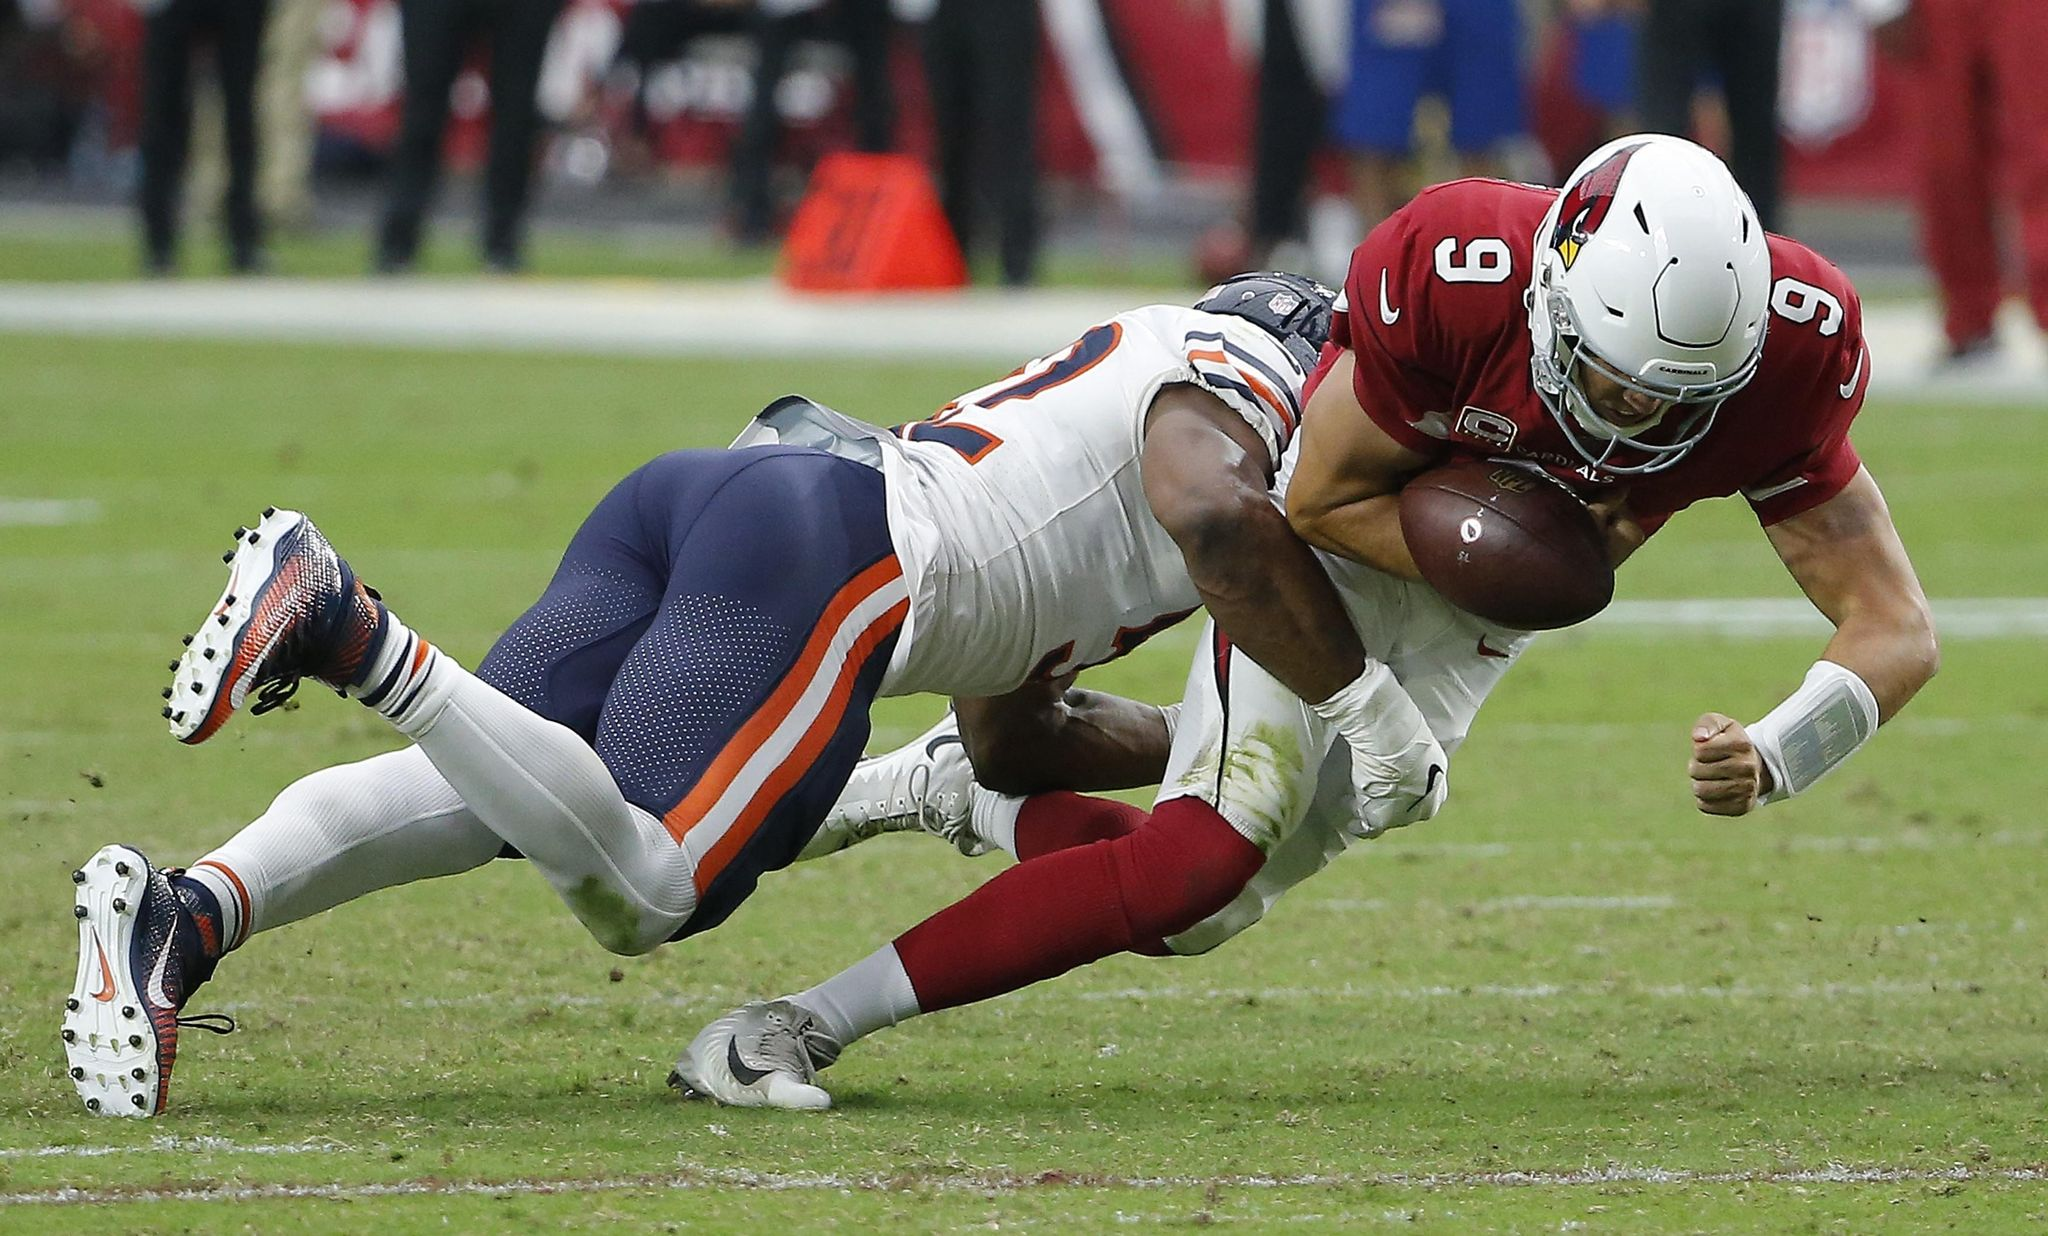 Cardinals facing quarterback quandary after loss to Bears - Washington Times